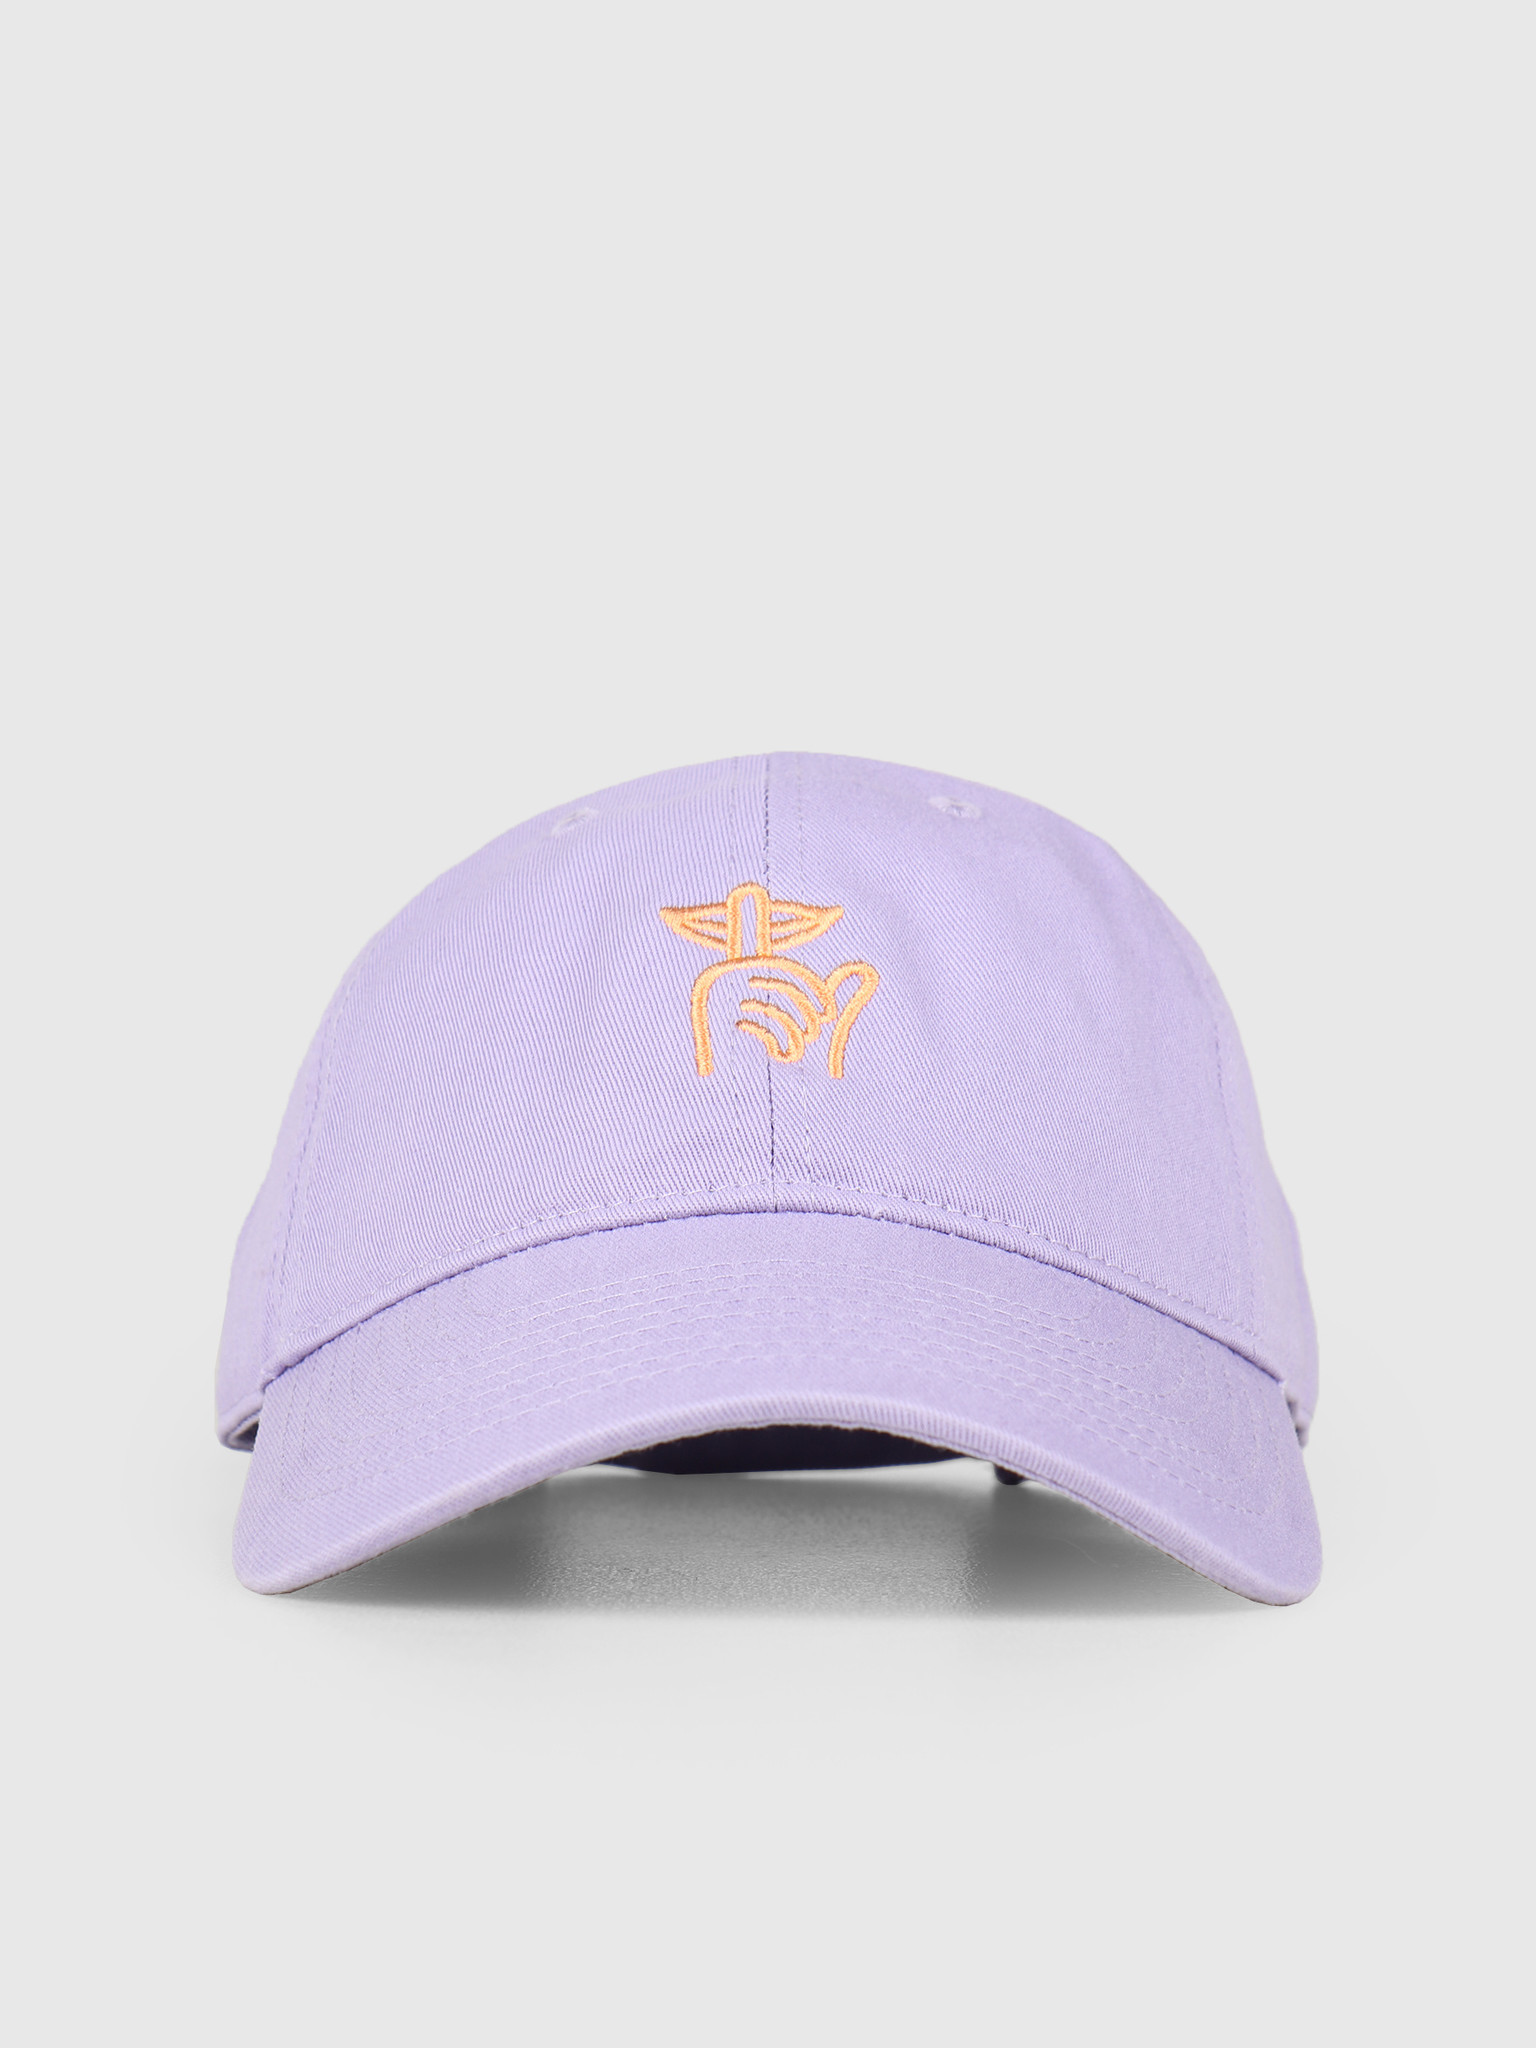 The Quiet Life The Quiet Life Shhh Dad Hat Purple 19SPD1-1233-PUR-OS